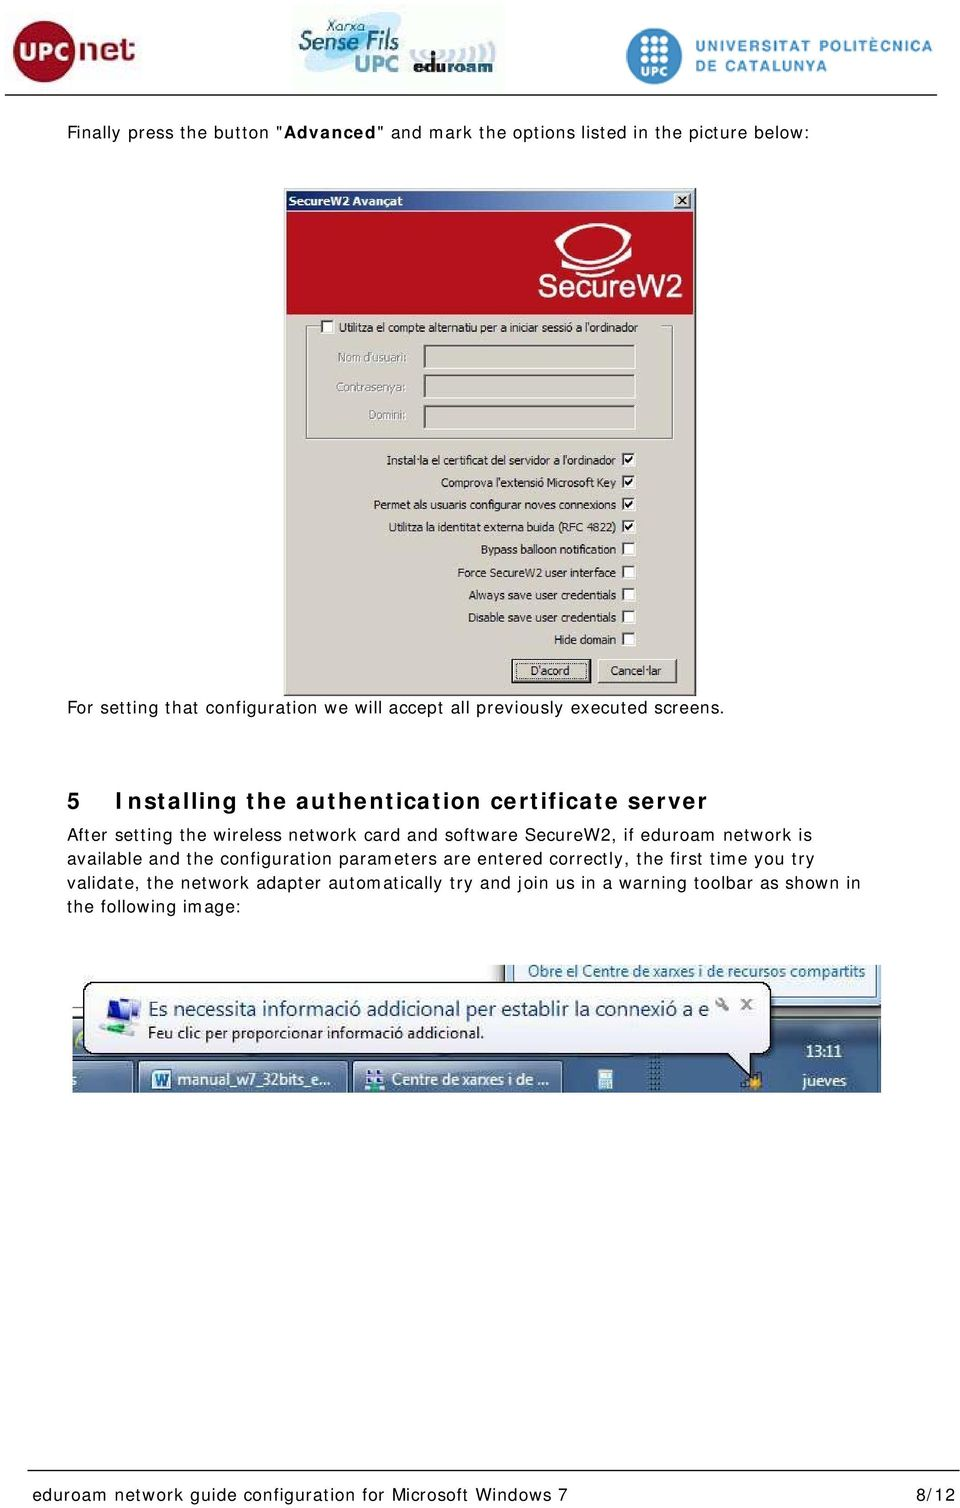 5 Installing the authentication certificate server After setting the wireless network card and software SecureW2, if eduroam network is